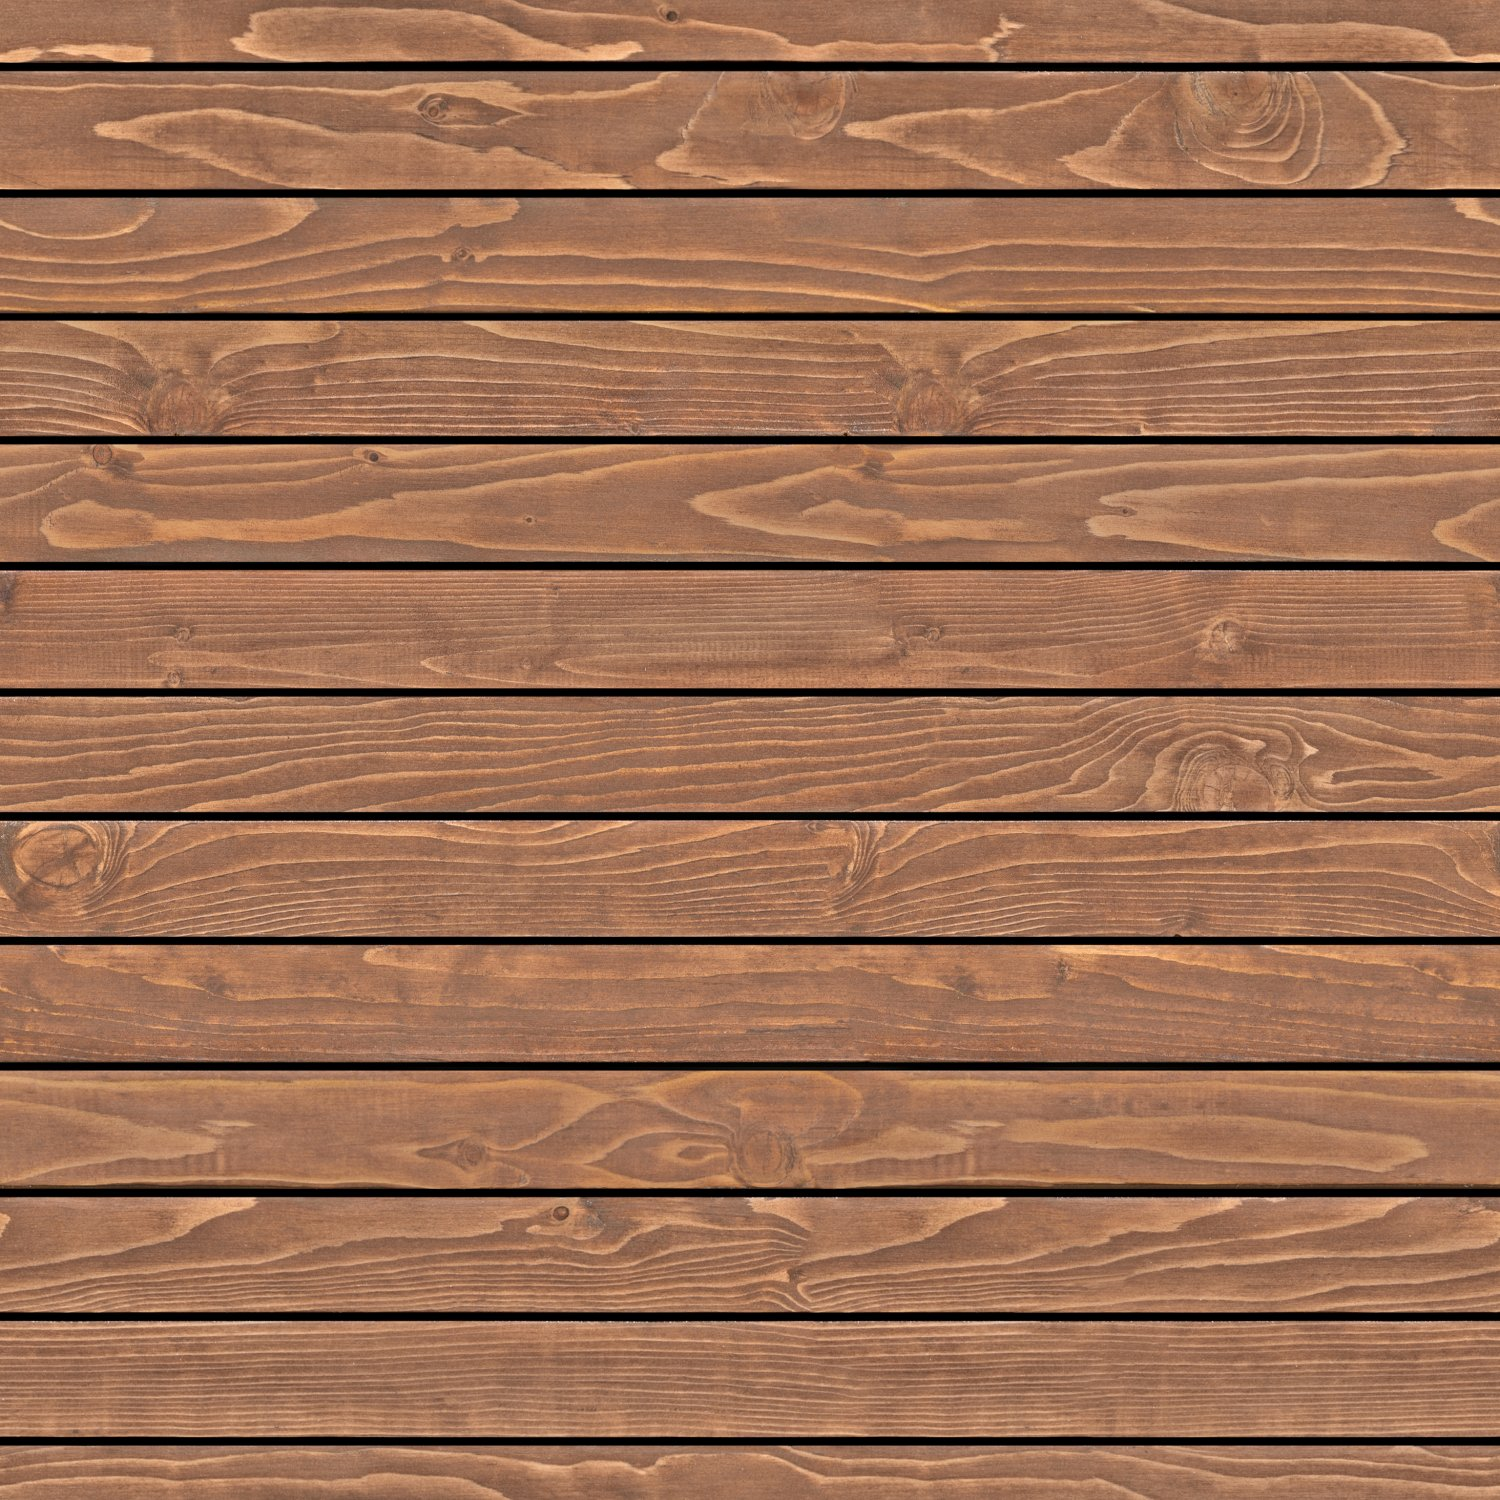 26 High Resolution 3K Architectural Wood Planks Seamless ...